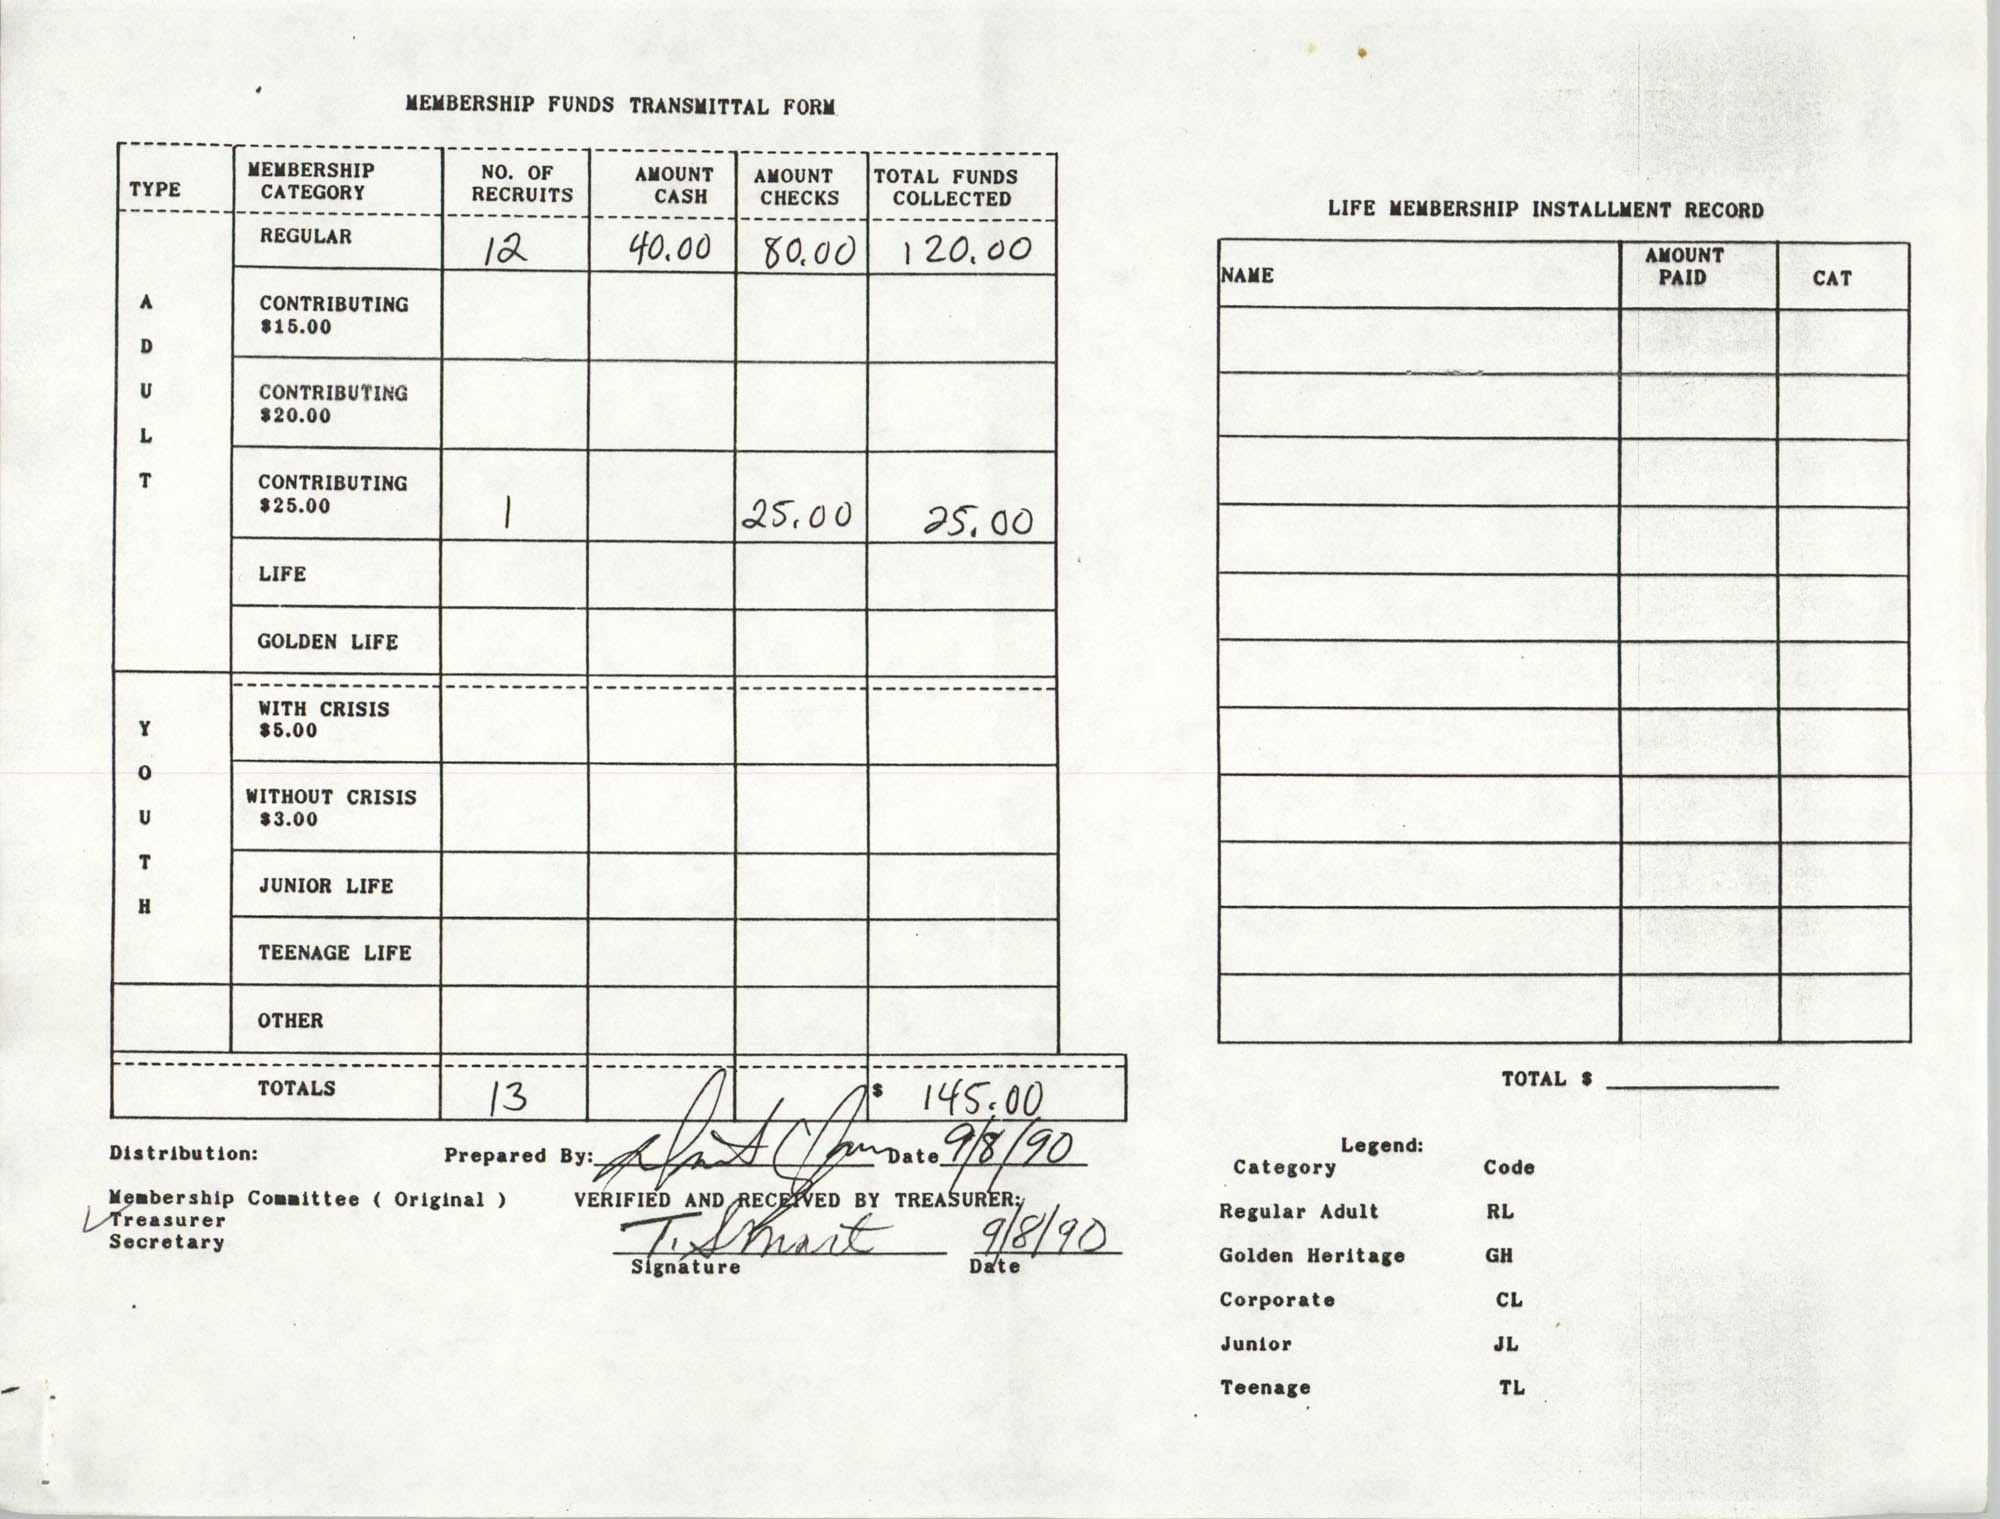 Charleston Branch of the NAACP Funds Transmittal Forms, September 1990, Page 1